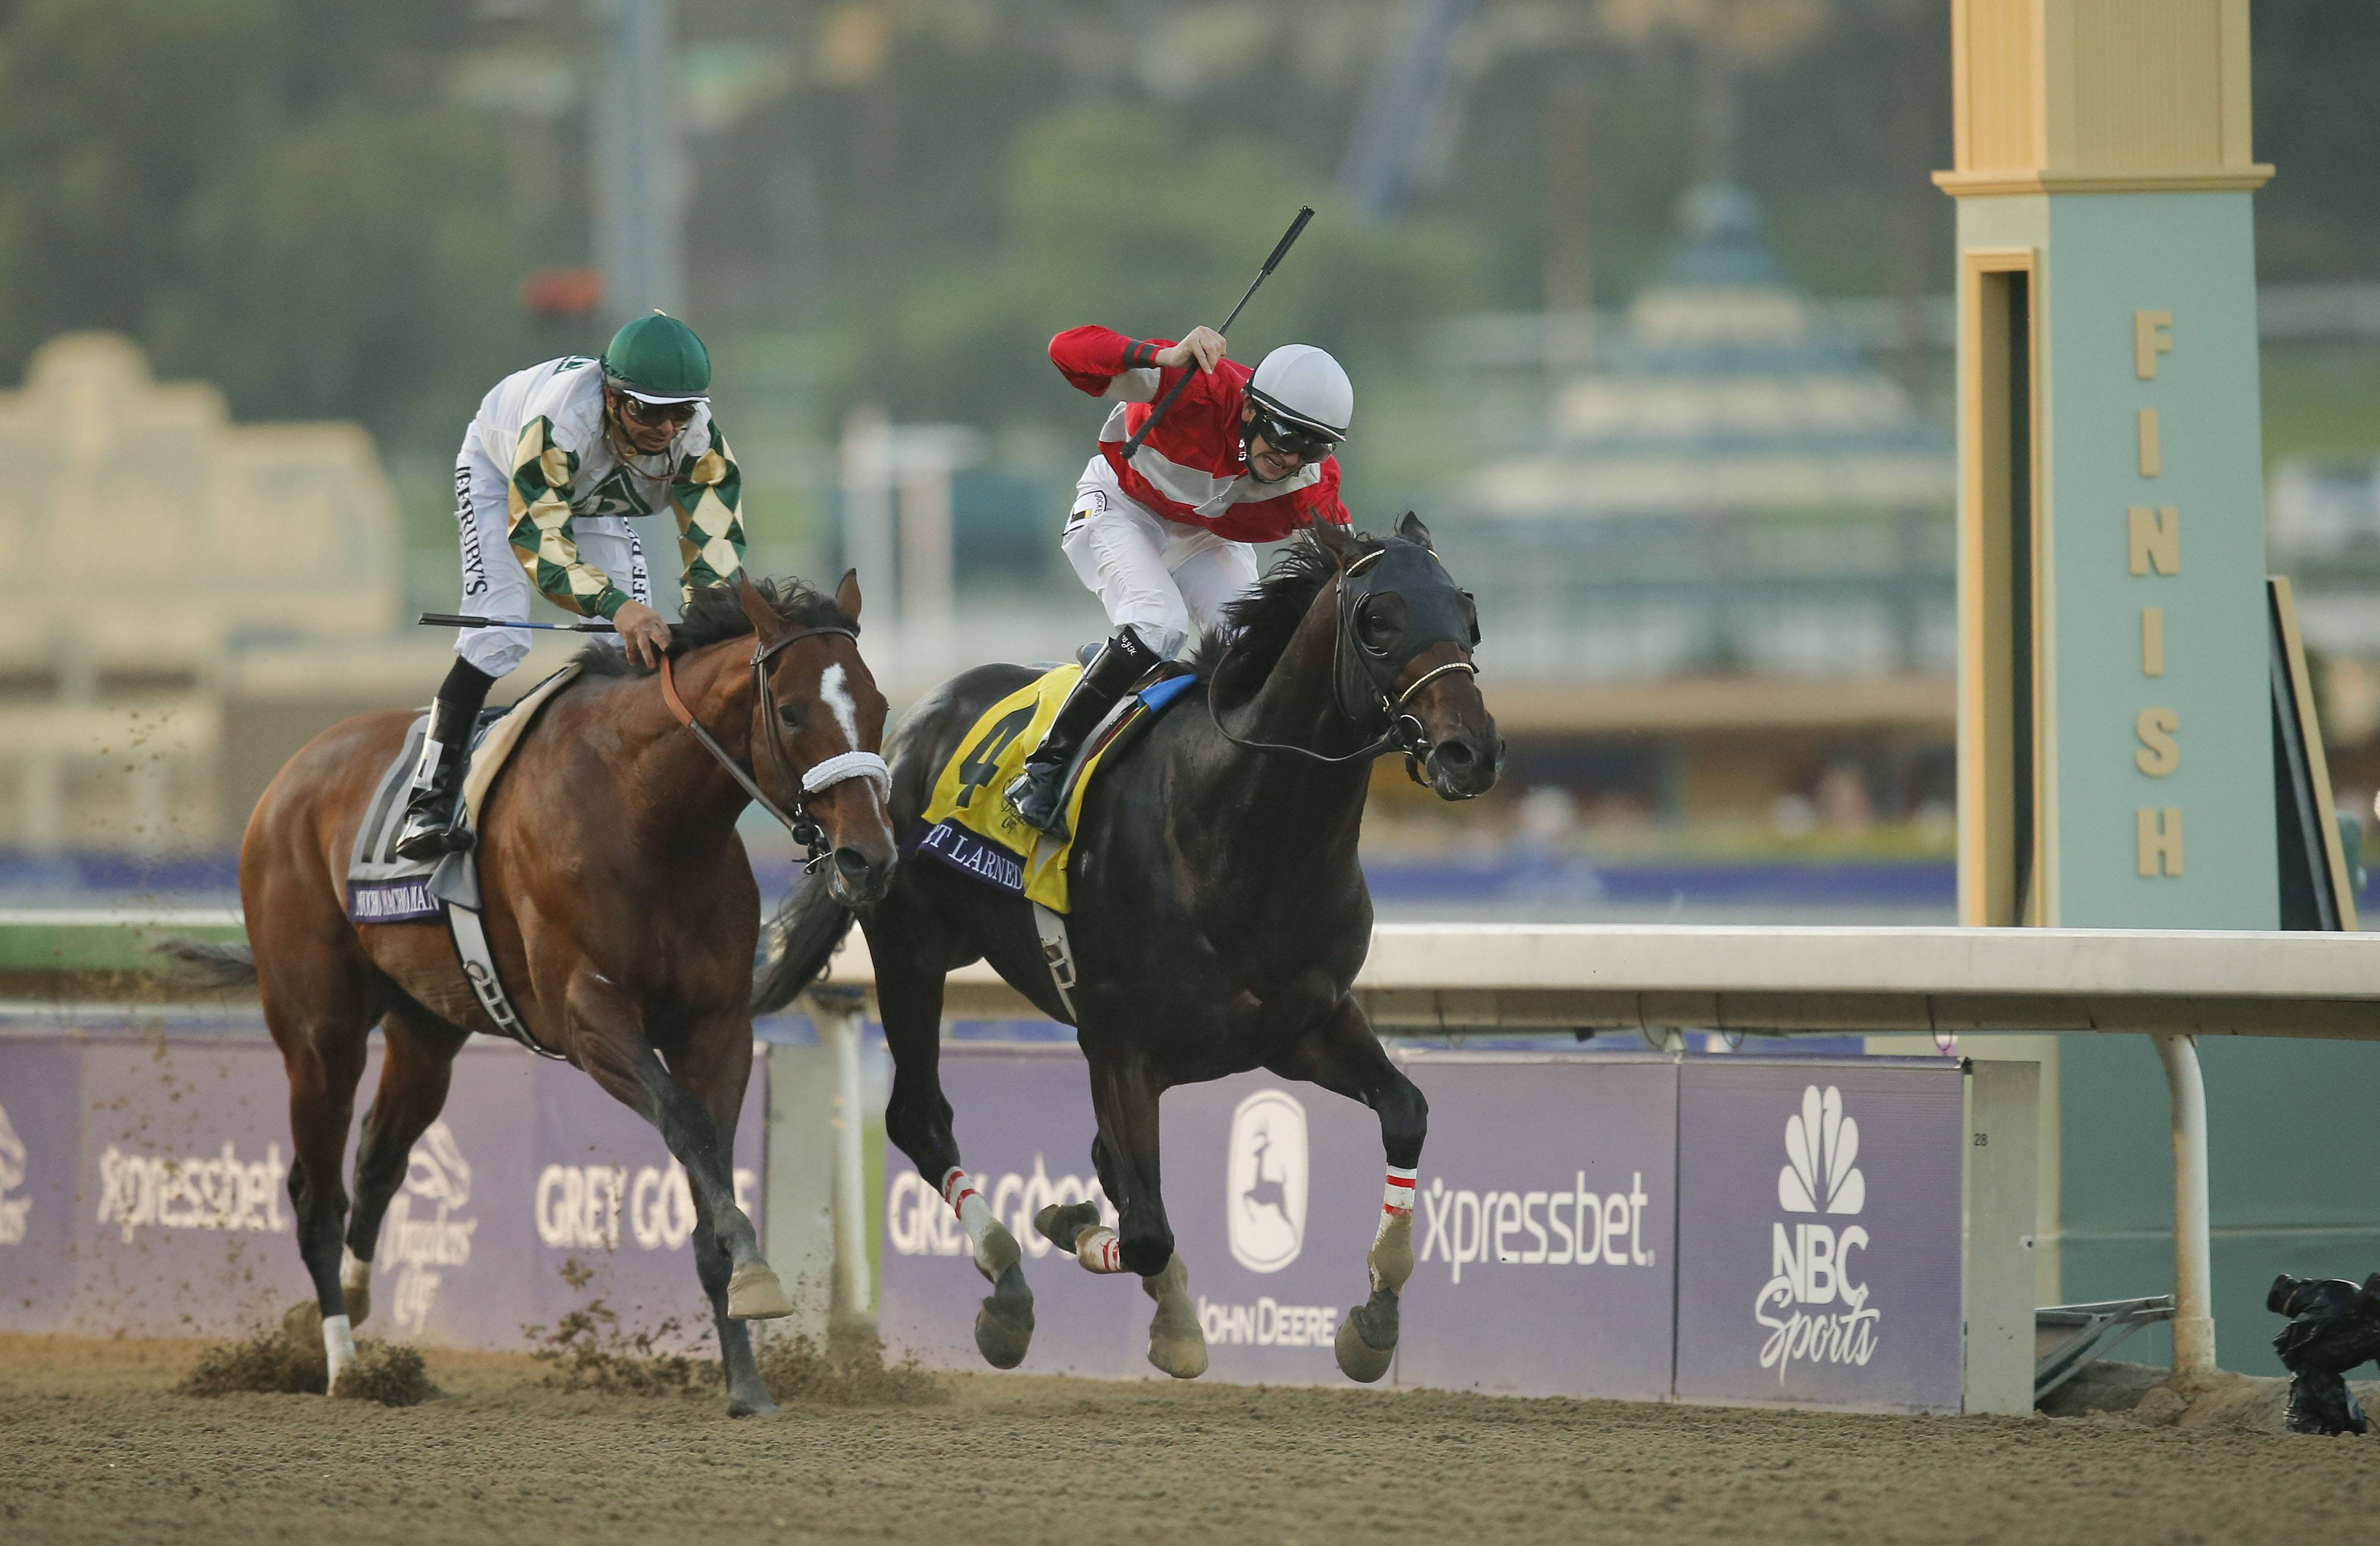 Brian Hernandez, atop Fort Larned, reacts as he crosses the finish line ahead of Mucho Macho Man, with Mike Smith atop, to win the Breeders' Cup Classic at Santa Anita Park in Arcadia, Calif.